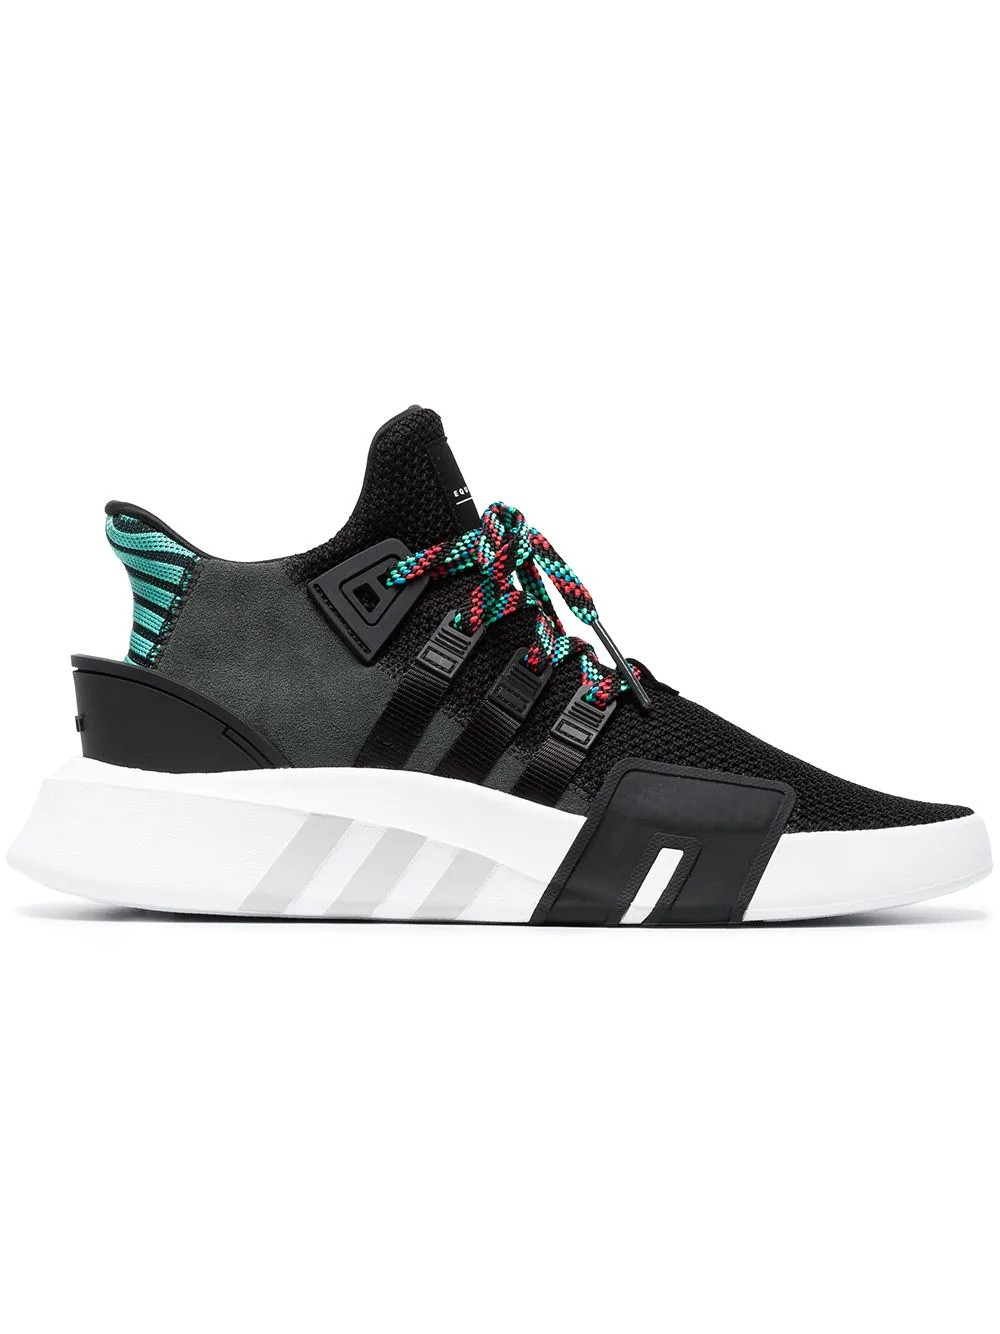 Adidas CQ2993 EQT Basketball ADV Homme Basketball Chaussure Noir